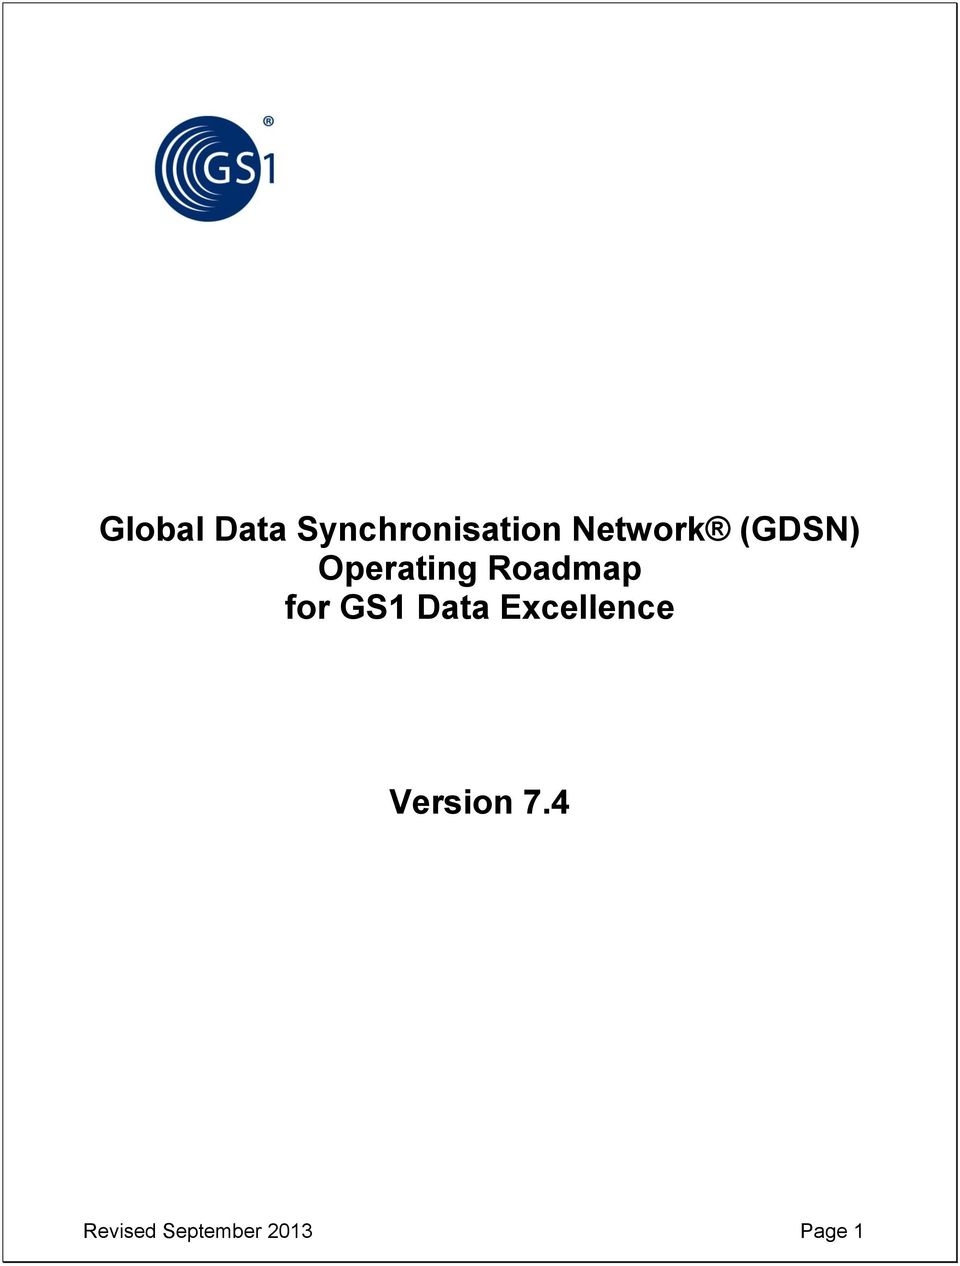 Roadmap for GS1 Data Excellence